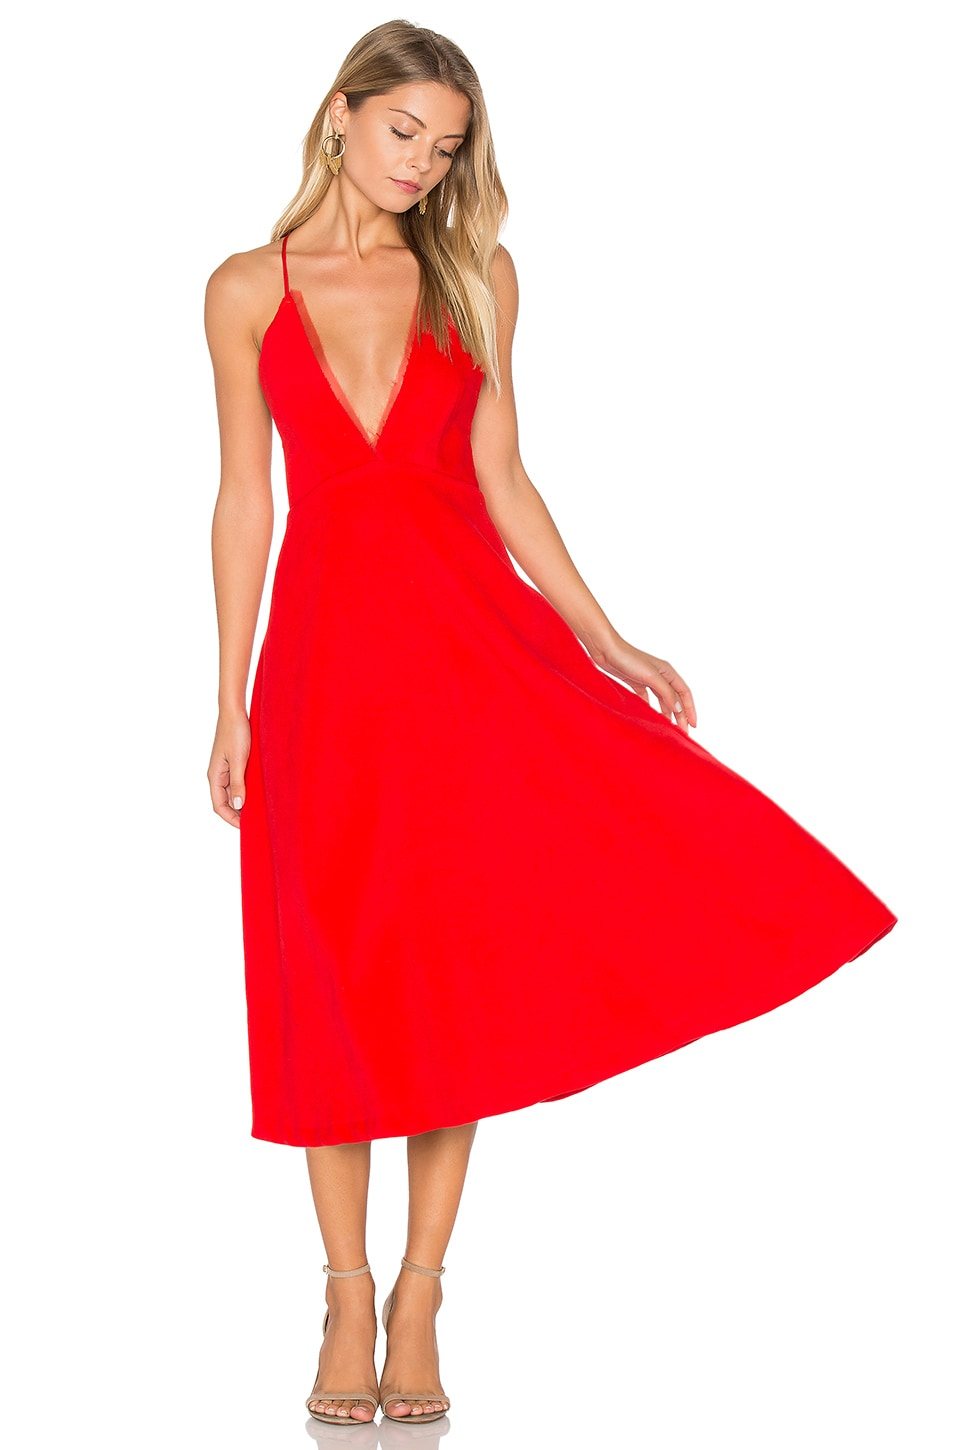 VIVIAN CHAN Magda Dress in Red